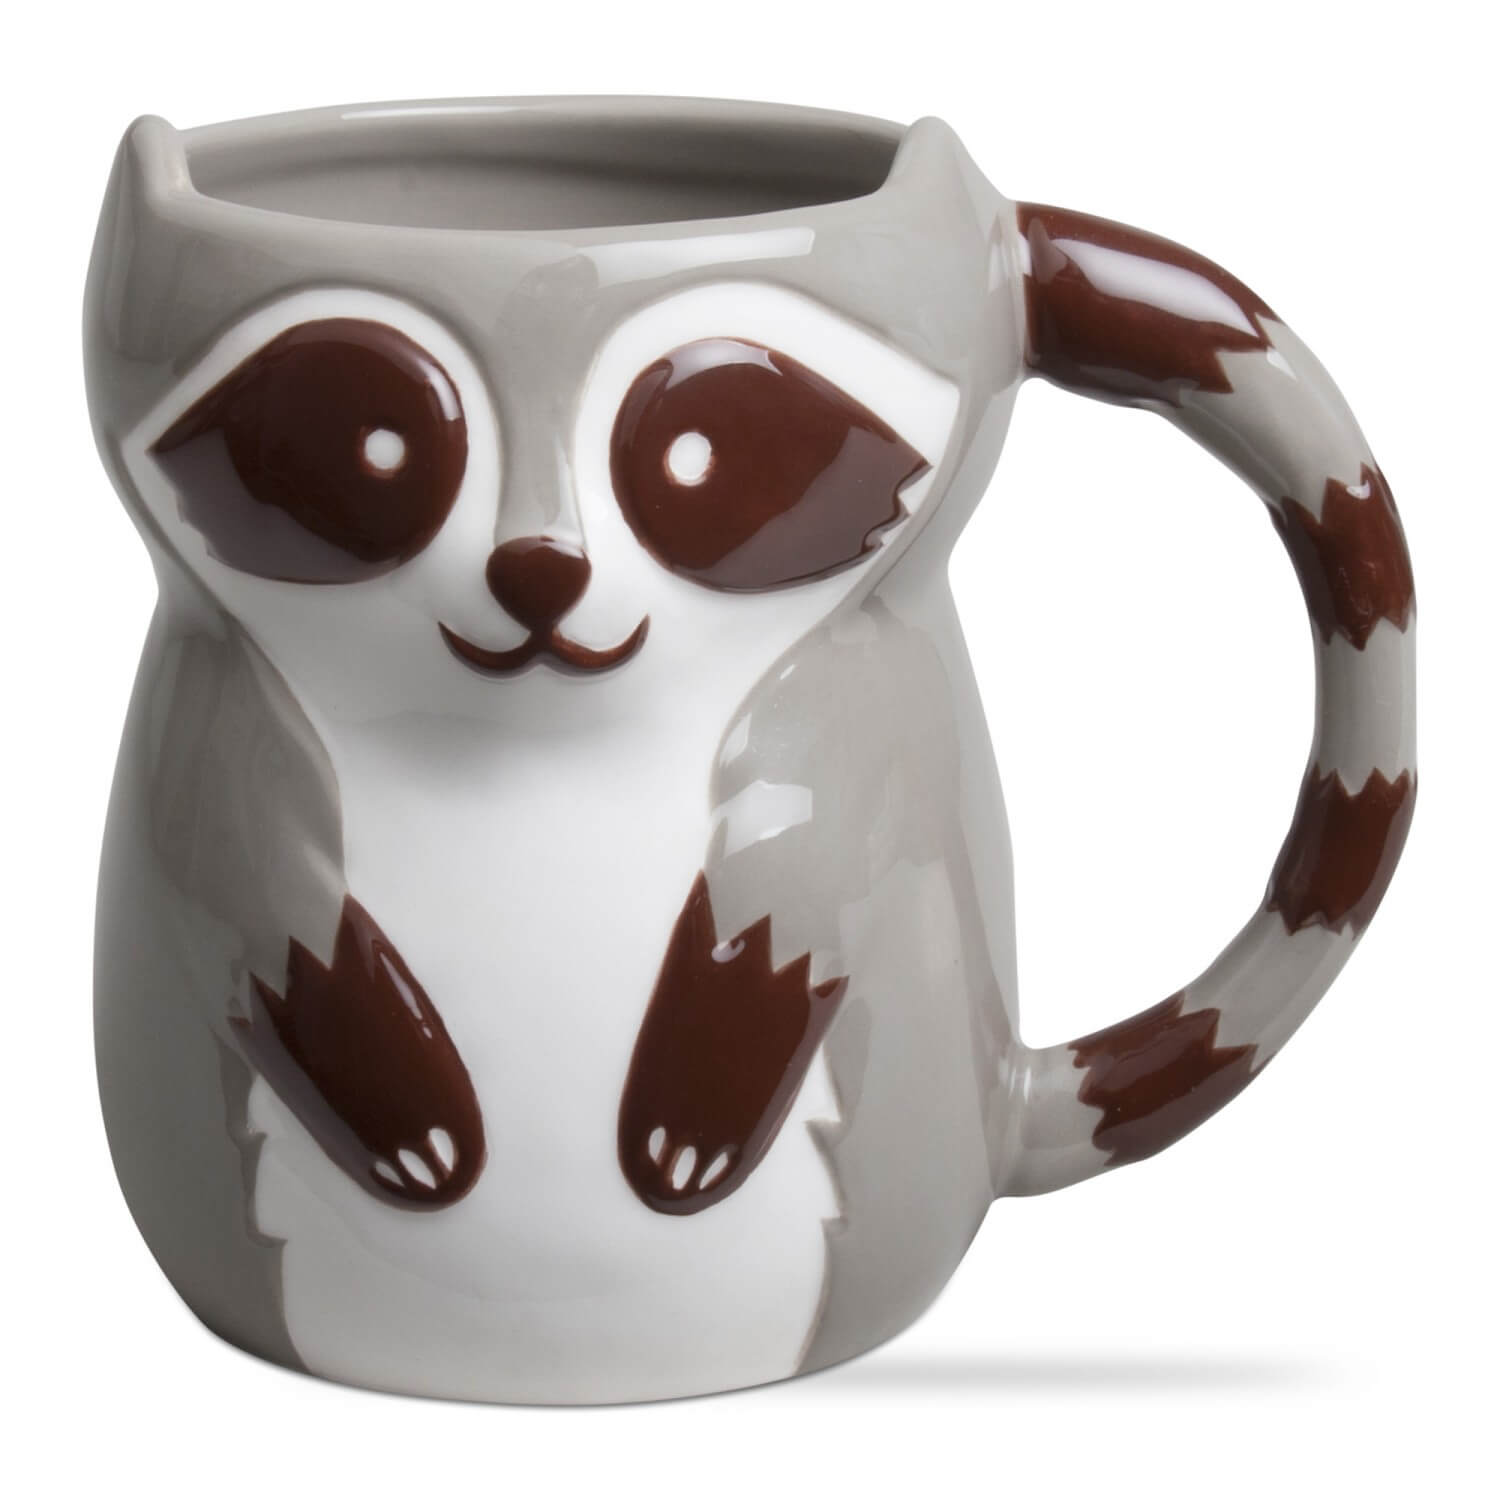 Comely Remy Raccoon Ceramic Mug Forest Friends Ceramic Mugs Teton Timberline Trading Owl Shaped Coffee Mugs furniture Owl Shaped Coffee Mug